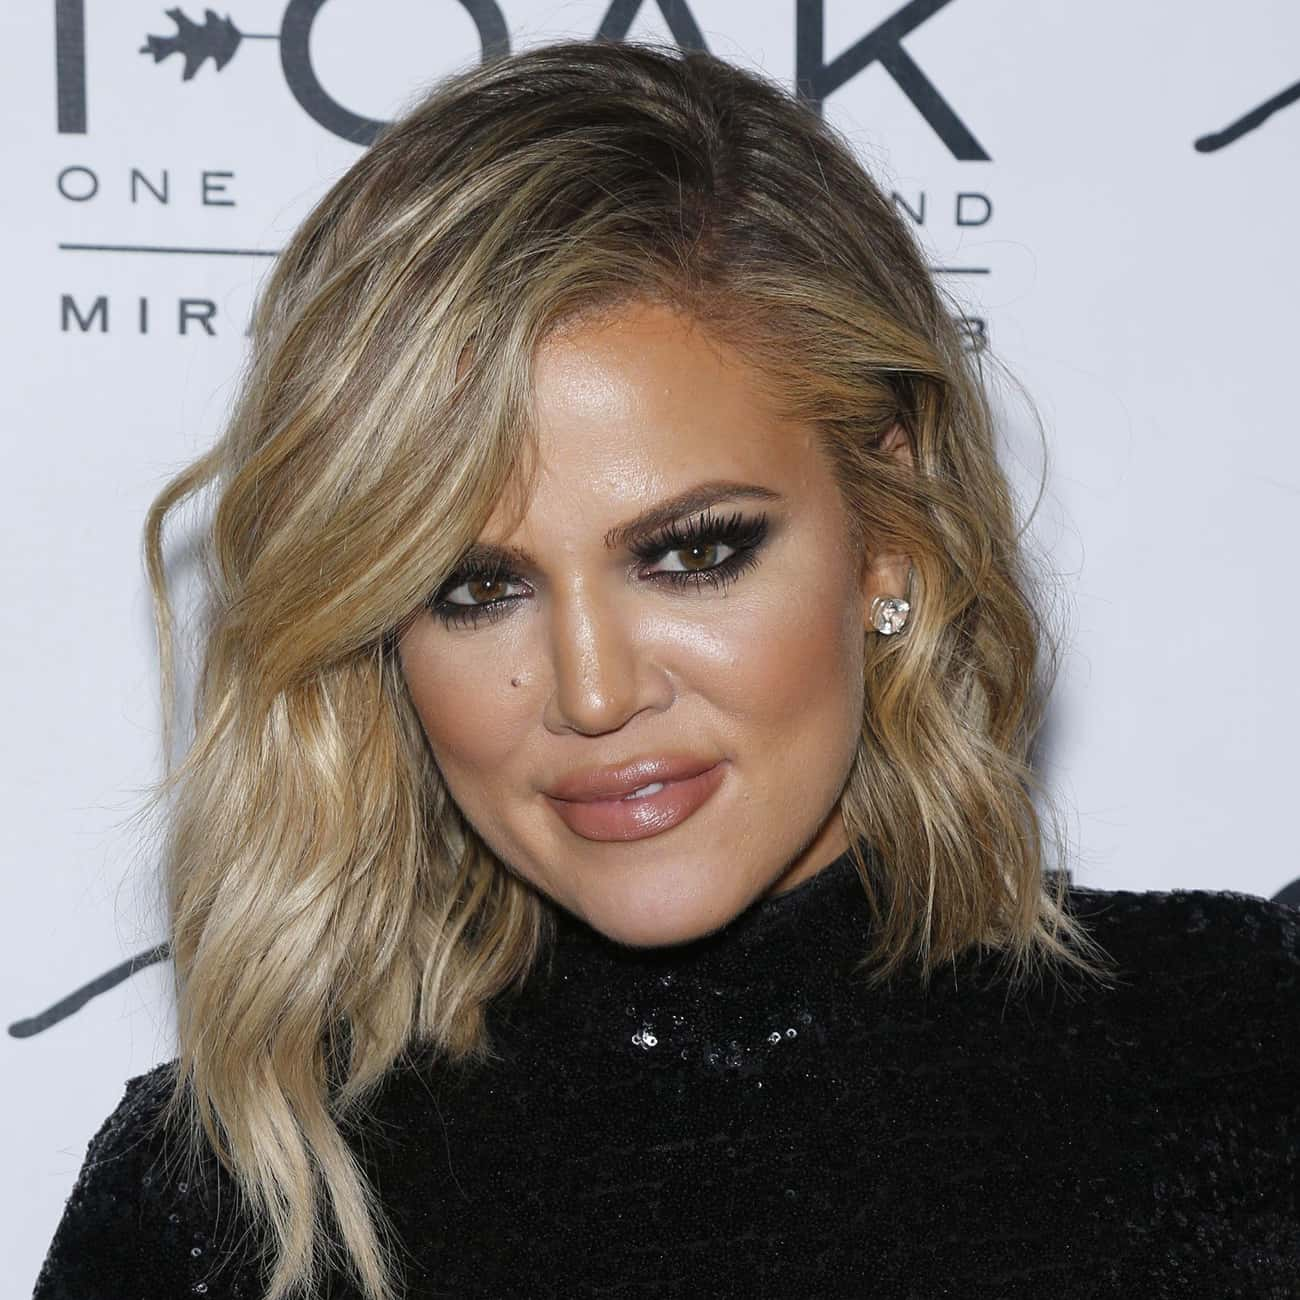 Khloé Kardashian Will Not Lift is listed (or ranked) 1 on the list Celebrity Assistants Spill Embarrassing Personal Stories